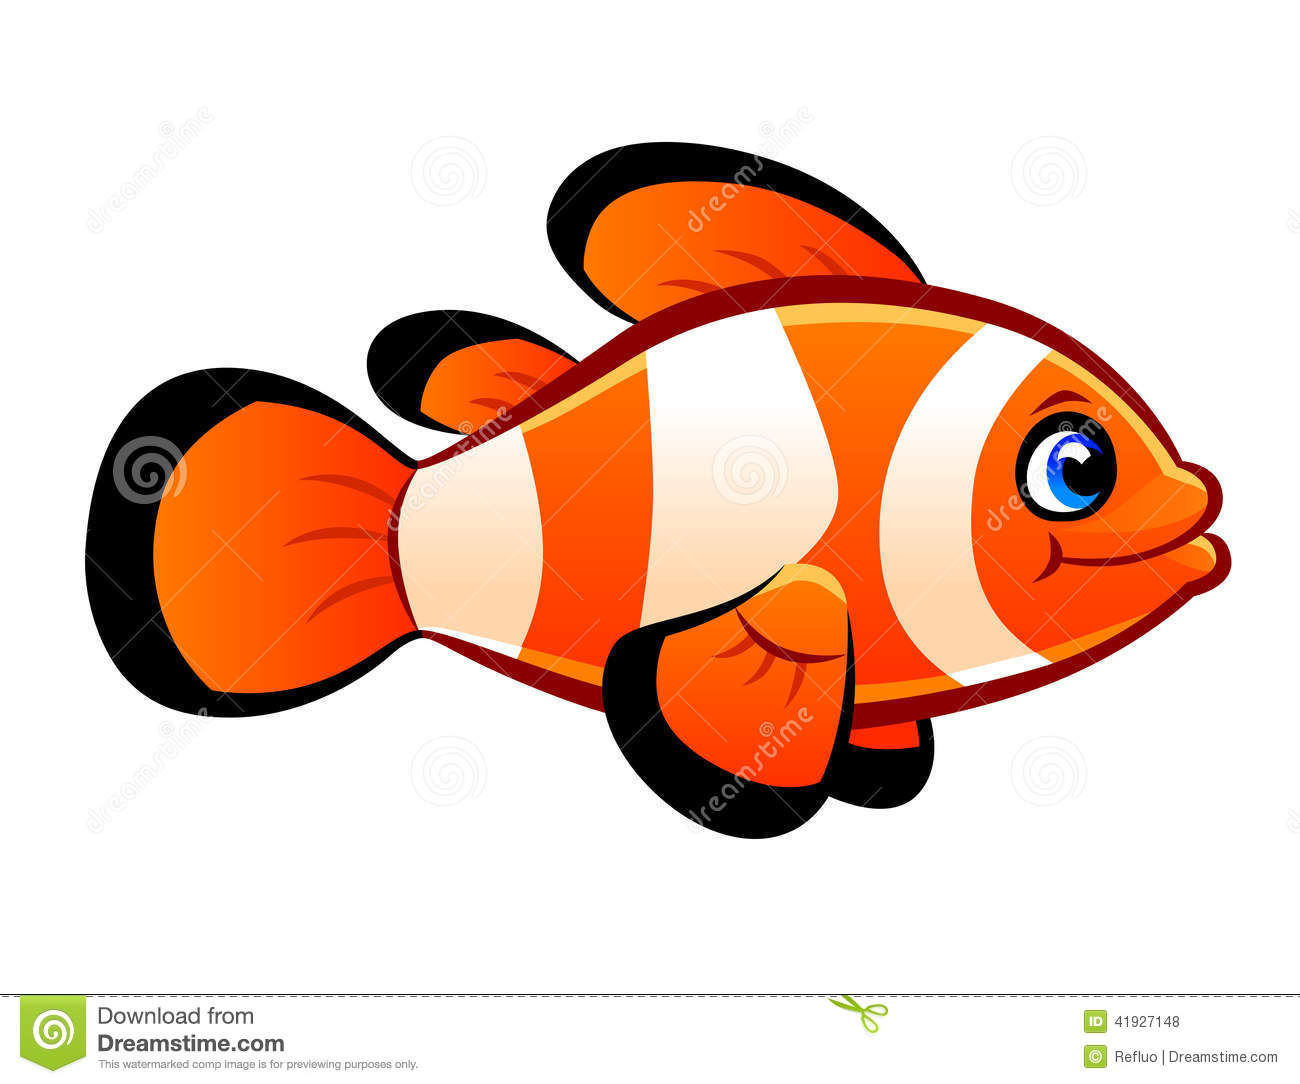 Clownfish clipart #12, Download drawings